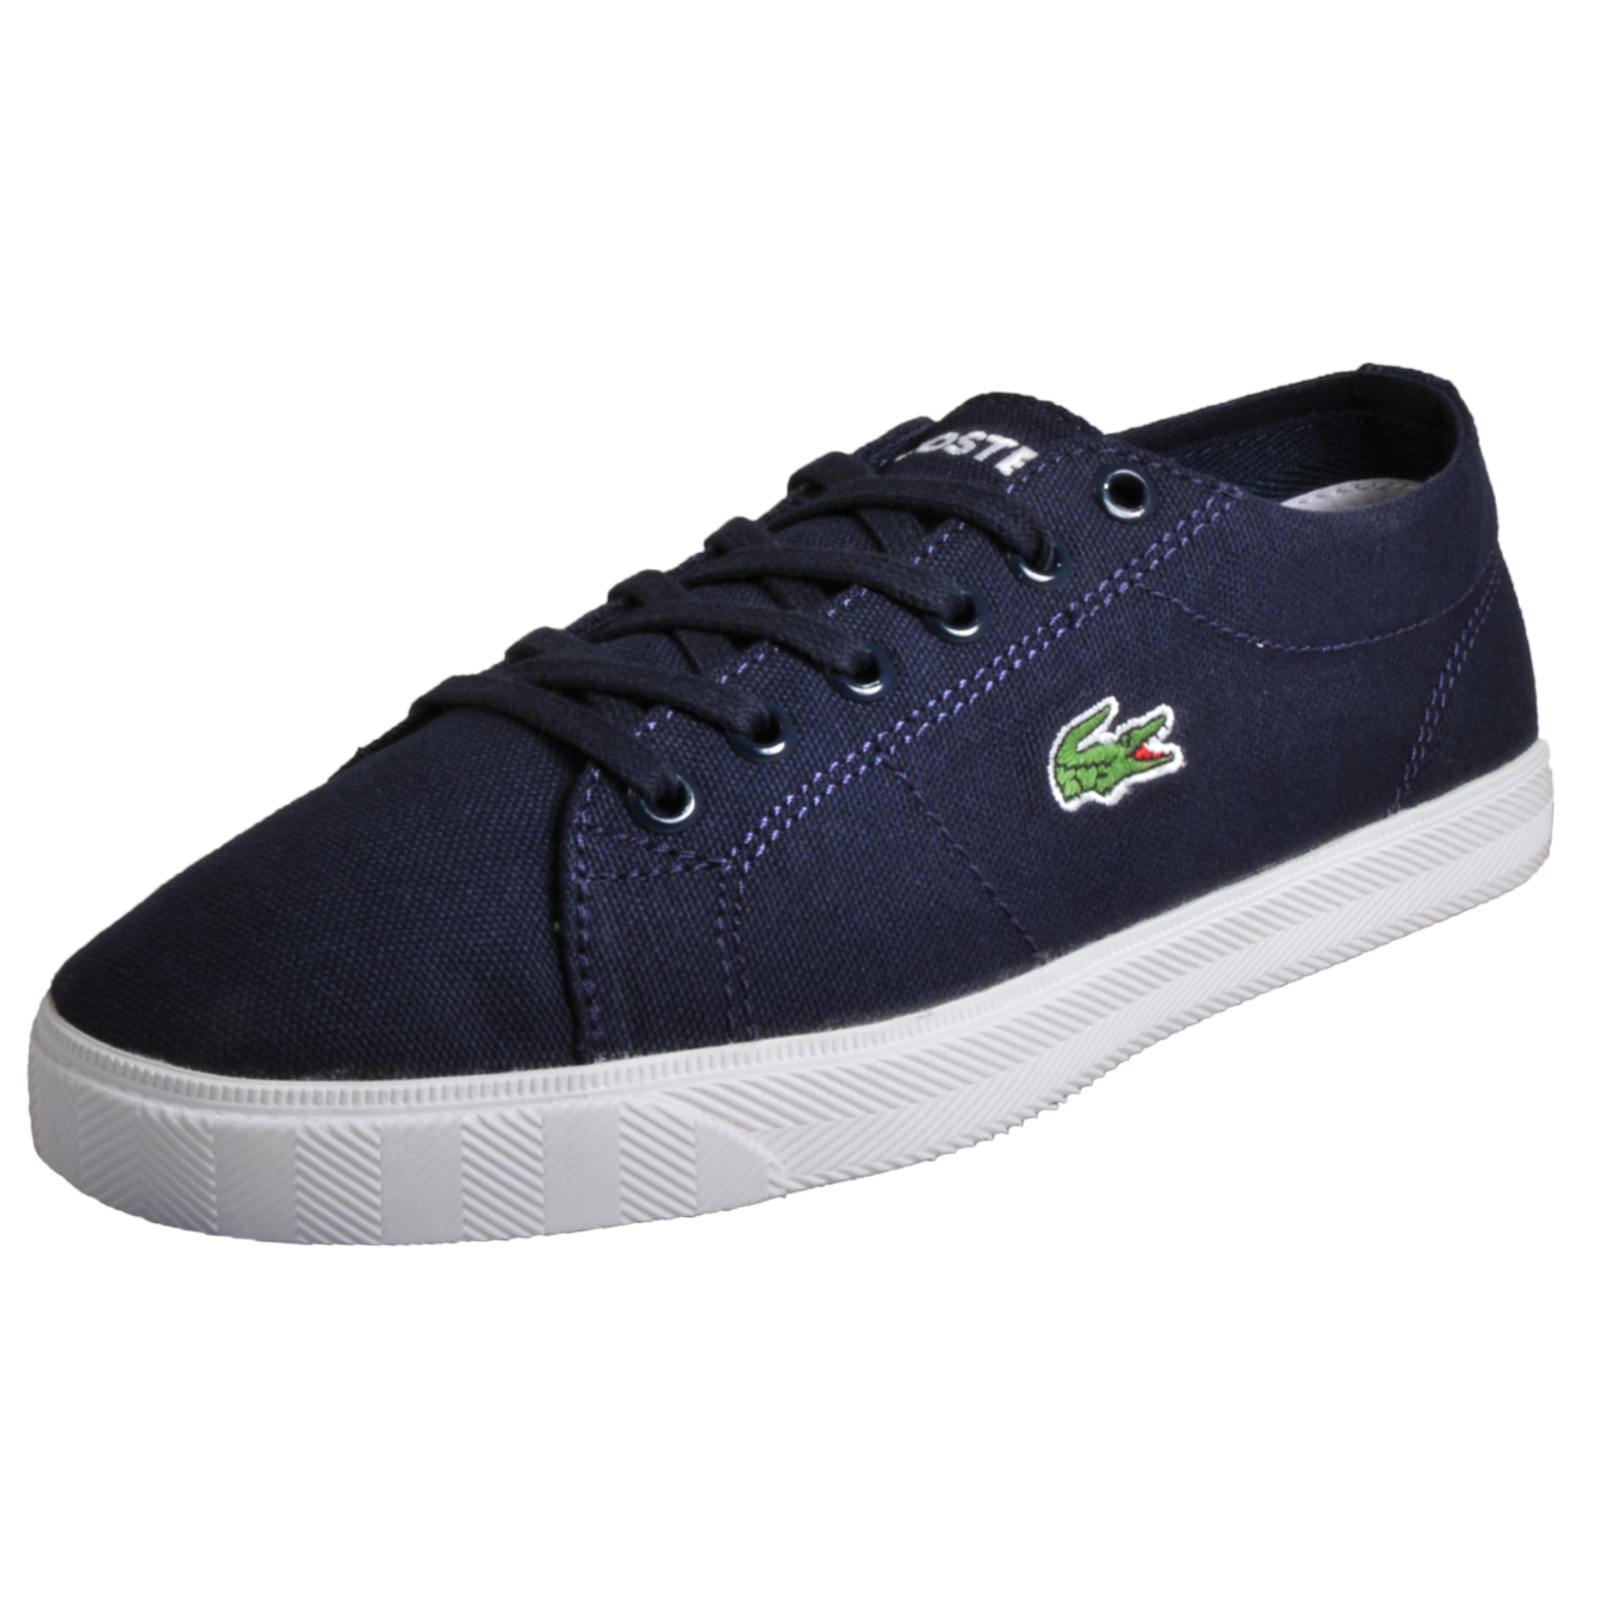 dbd3c5bc8 Details about Lacoste Riberac Women s Causal Pumps Fashion Holiday Plimsol  Trainers Blue